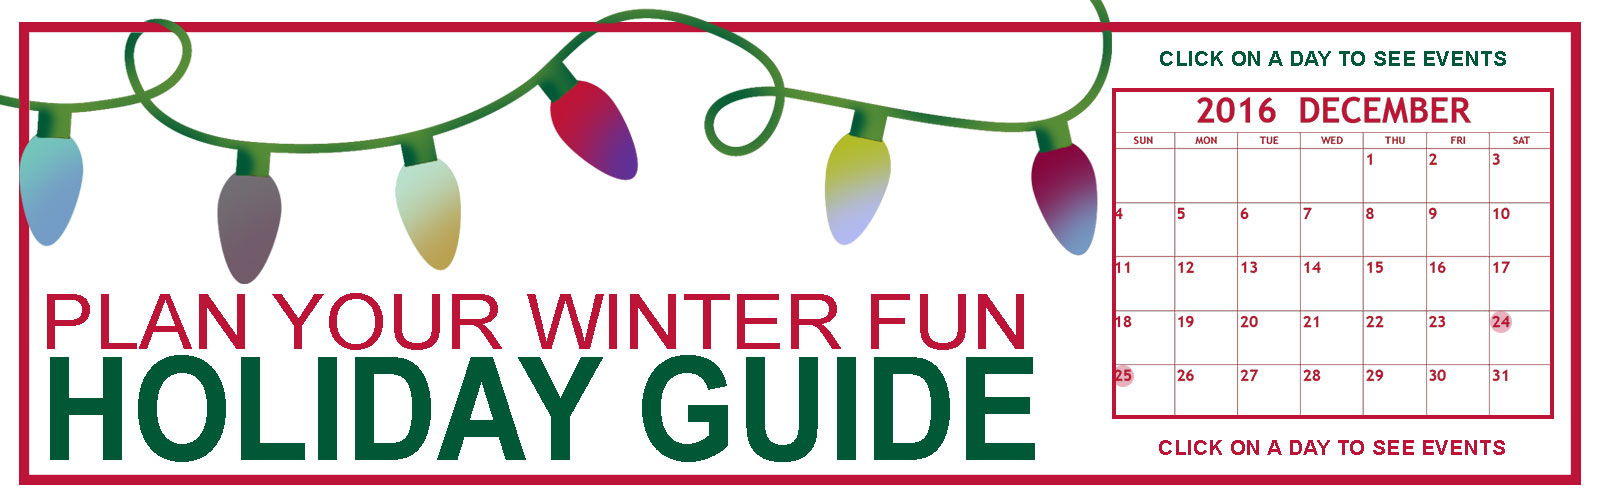 Boise, Idaho Holiday Christmas Guide 2016